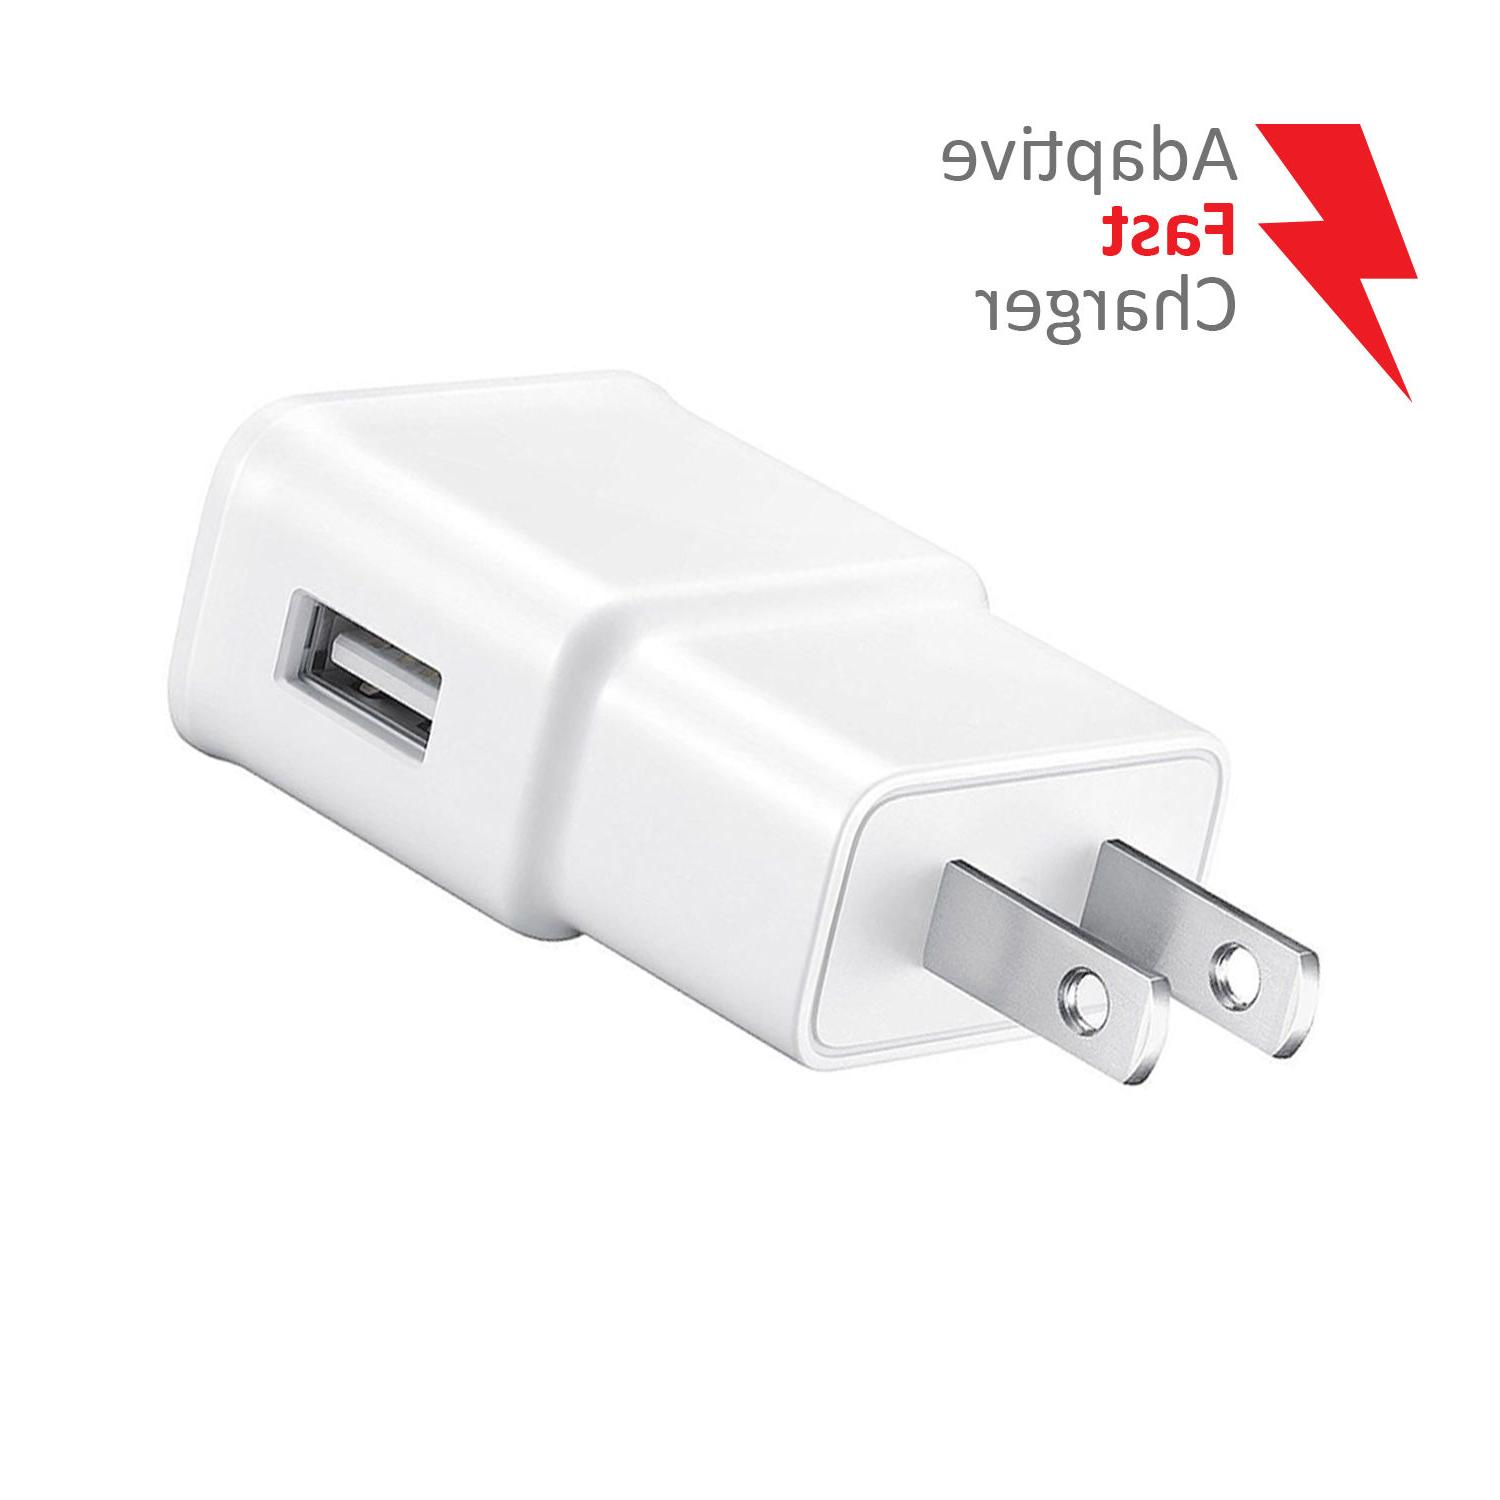 OEM Samsung Galaxy S7 Note Fast Charging USB Charger